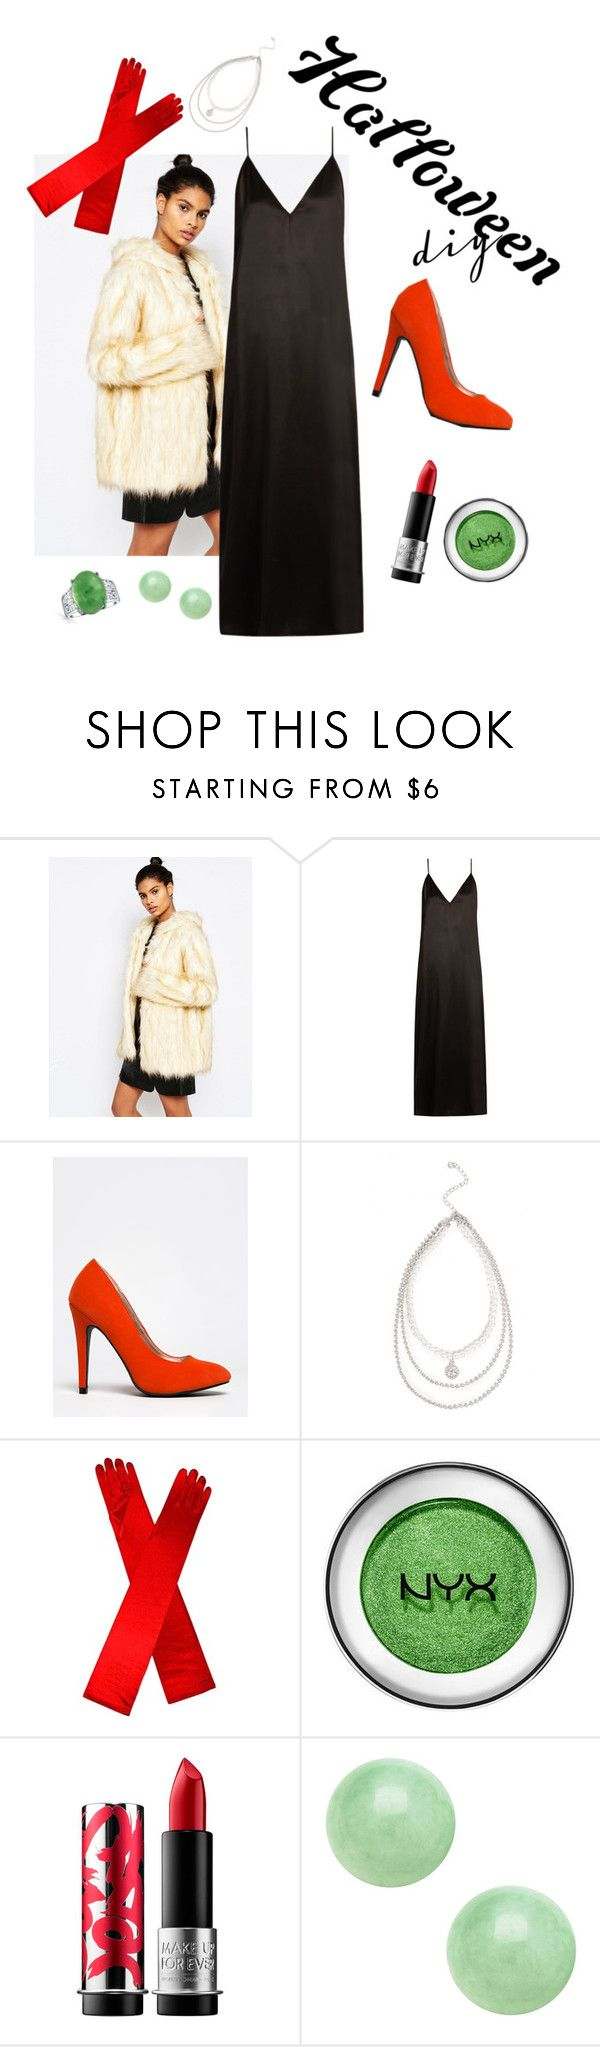 """DIY Cruella Deville Costume"" by balletabbi ❤ liked on Polyvore featuring Story of Lola, Raey, Qupid, MAKE UP FOR EVER, Bling Jewelry, halloweencostume and DIYHalloween"